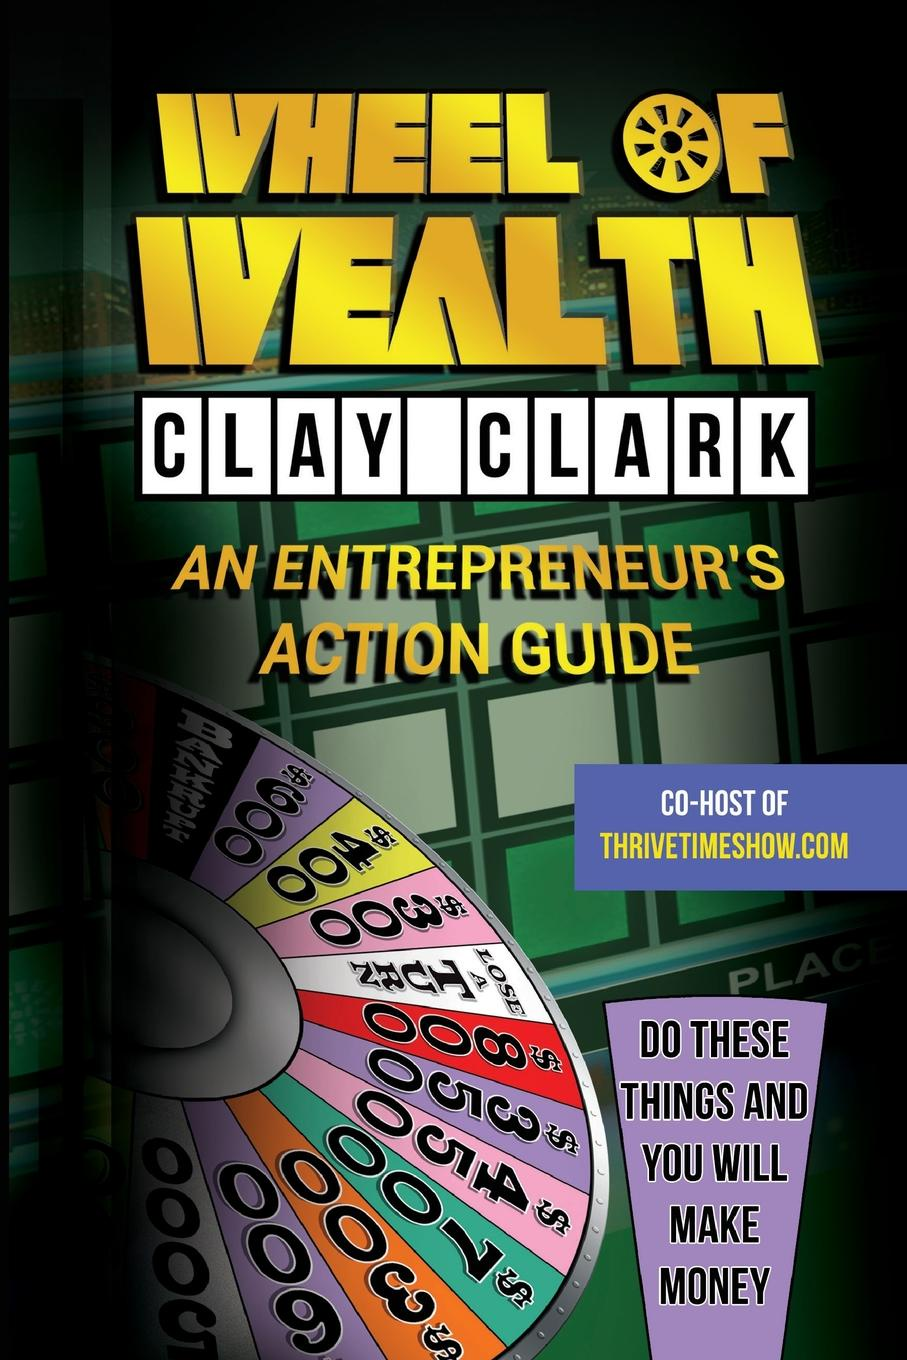 Clay Clark Wheel of Wealth. An Entrepreneur's Action Guide linda parkinson hardman how to build a brilliant business with the internet 101 essential hints for every successful small business and entrepreneur